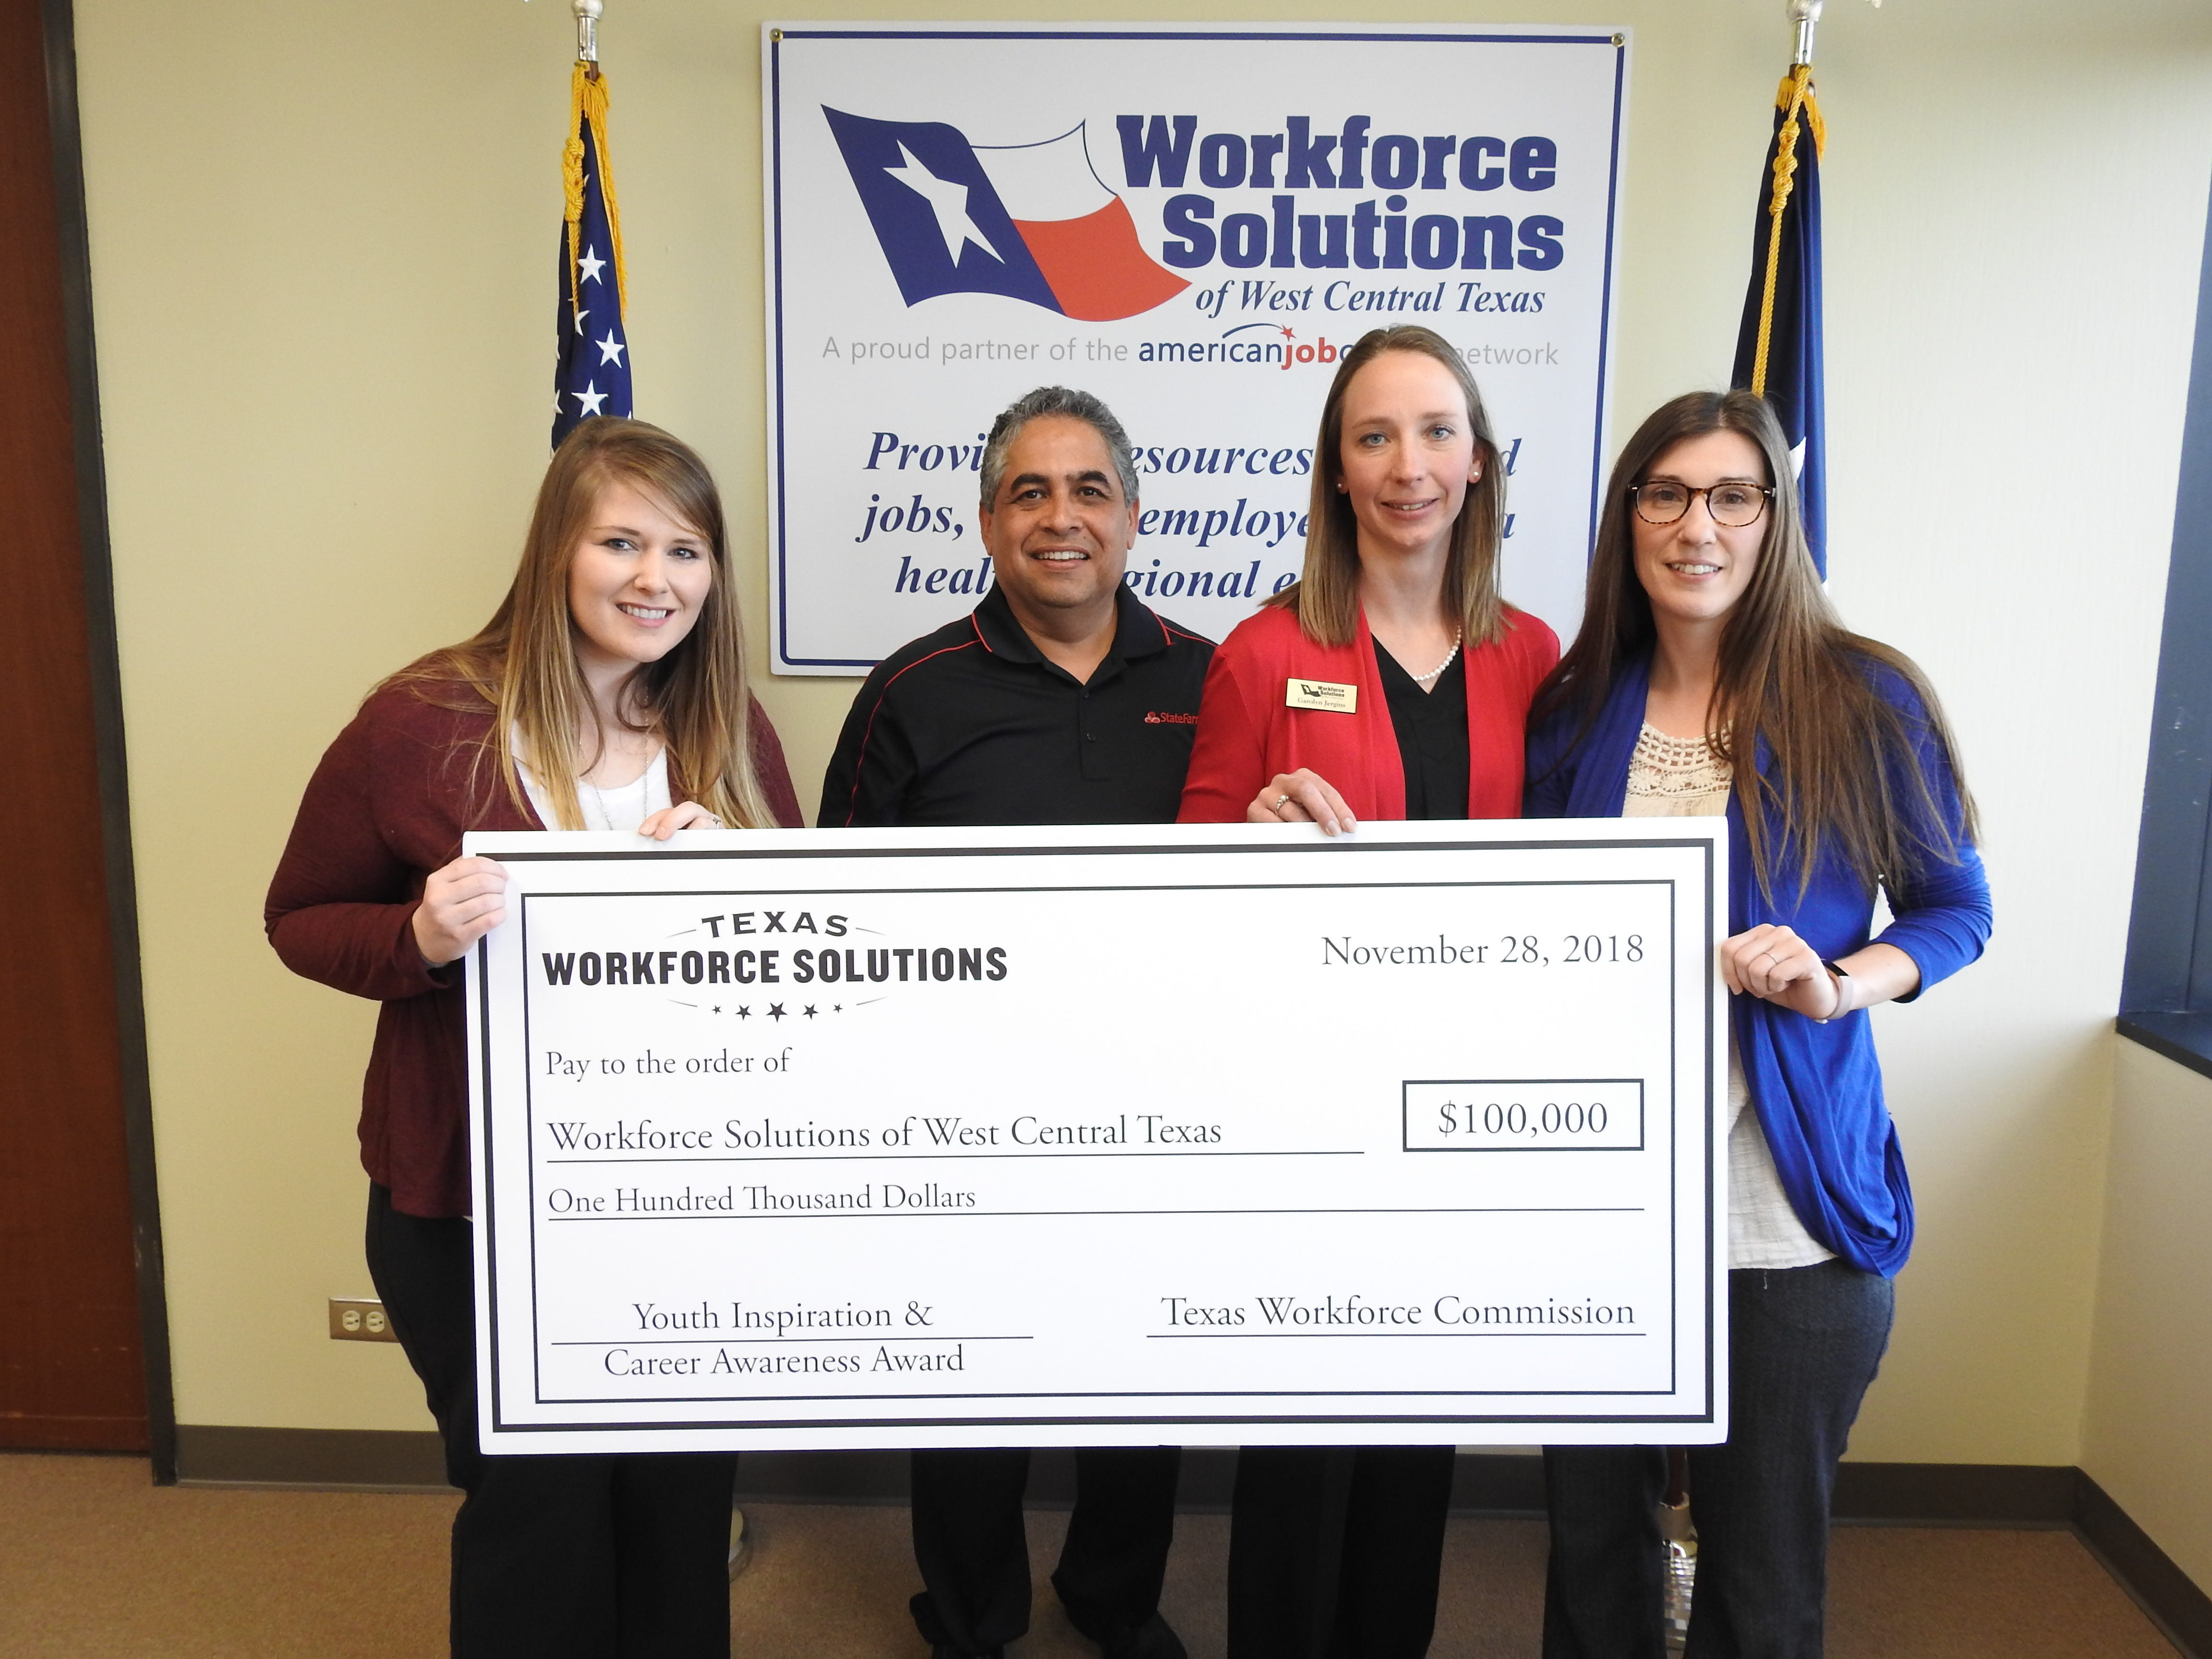 """As part of the """"Red Carpet Premiere Careers in Action"""" Youth Inspiration & Career Awareness Initiative, Workforce Solutions of West Central Texas was presented a $100,000 award on Nov. 27. From left: Lindsey Phillips, board chairman Samuel Garcia, Garolyn Jergins and Alyssa Goodgame."""